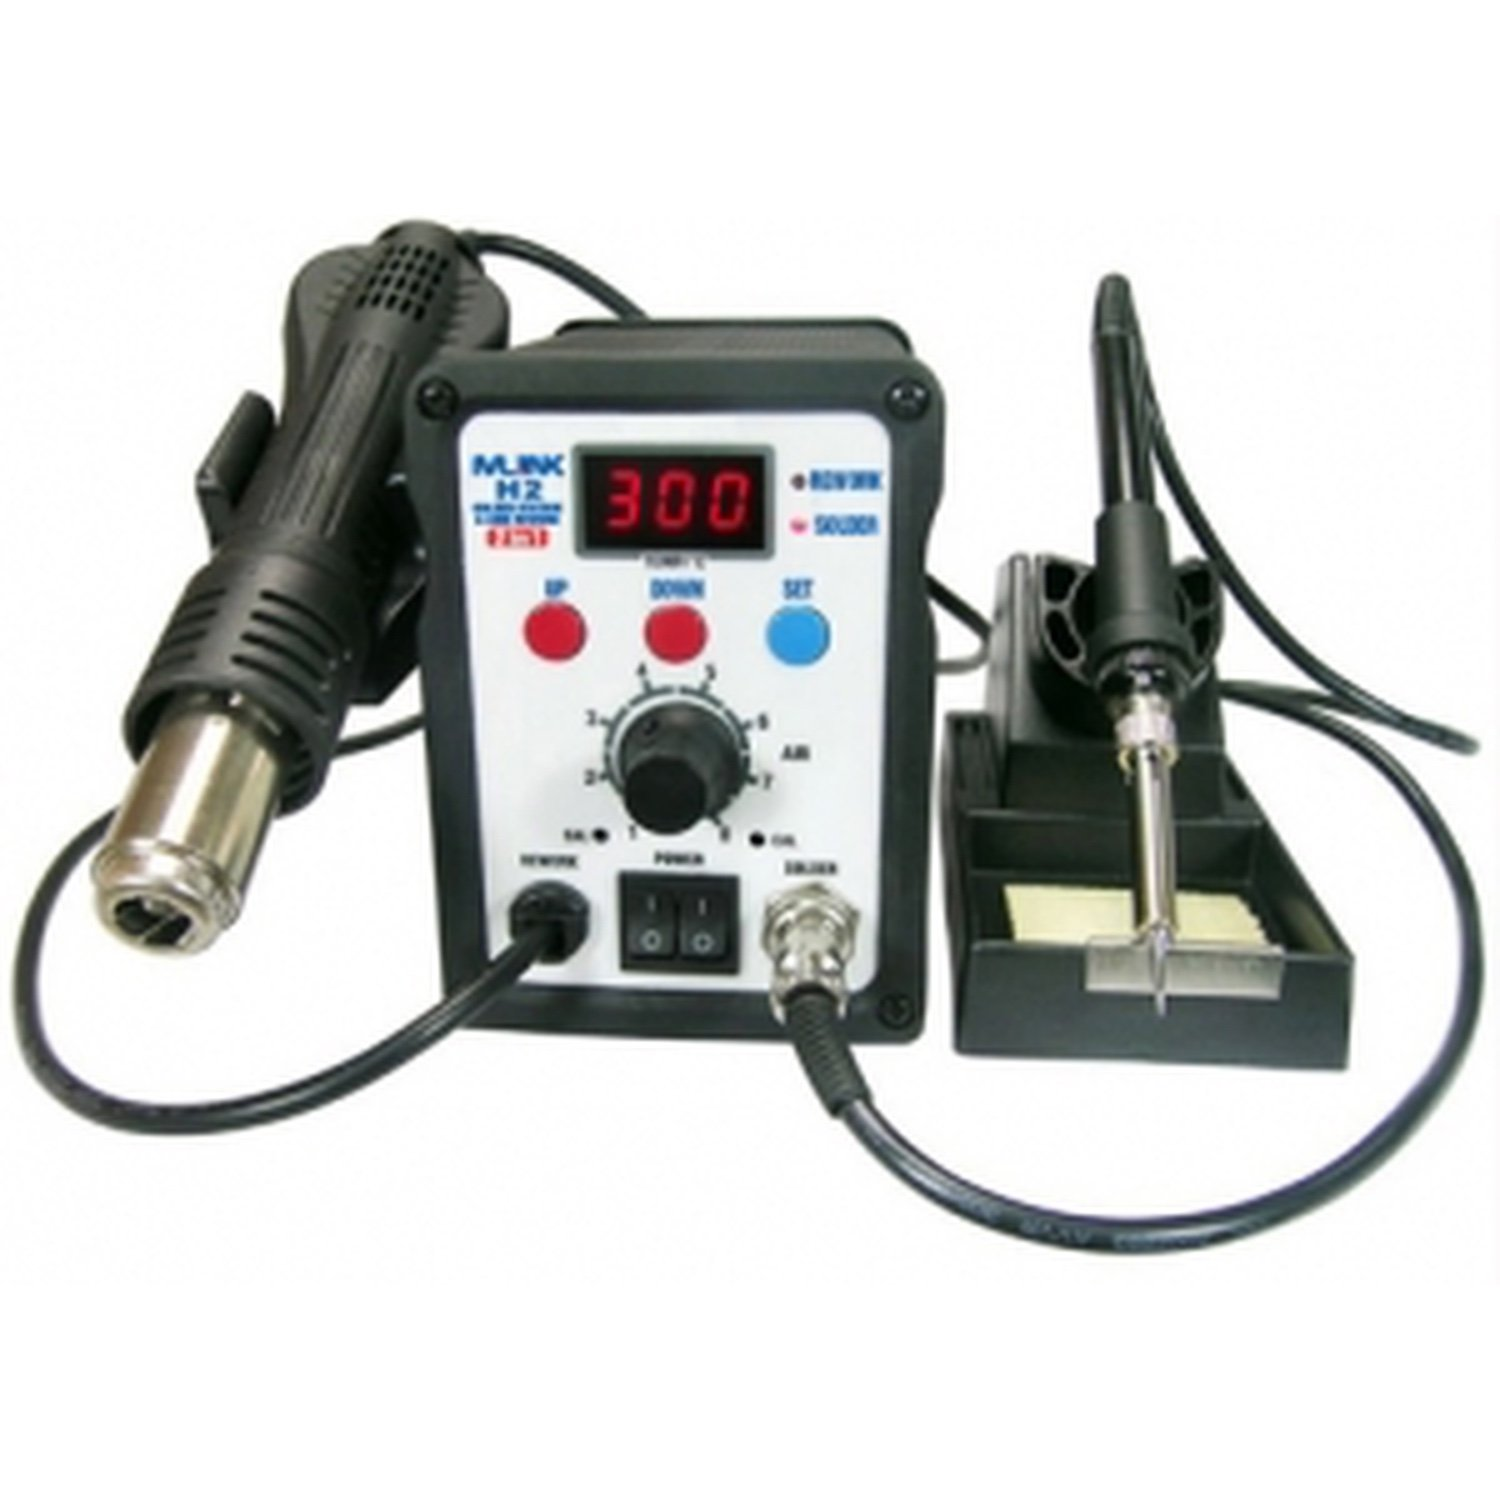 Station 2 In 1 Hot Air Welding And Soldering Iron MLINK H2